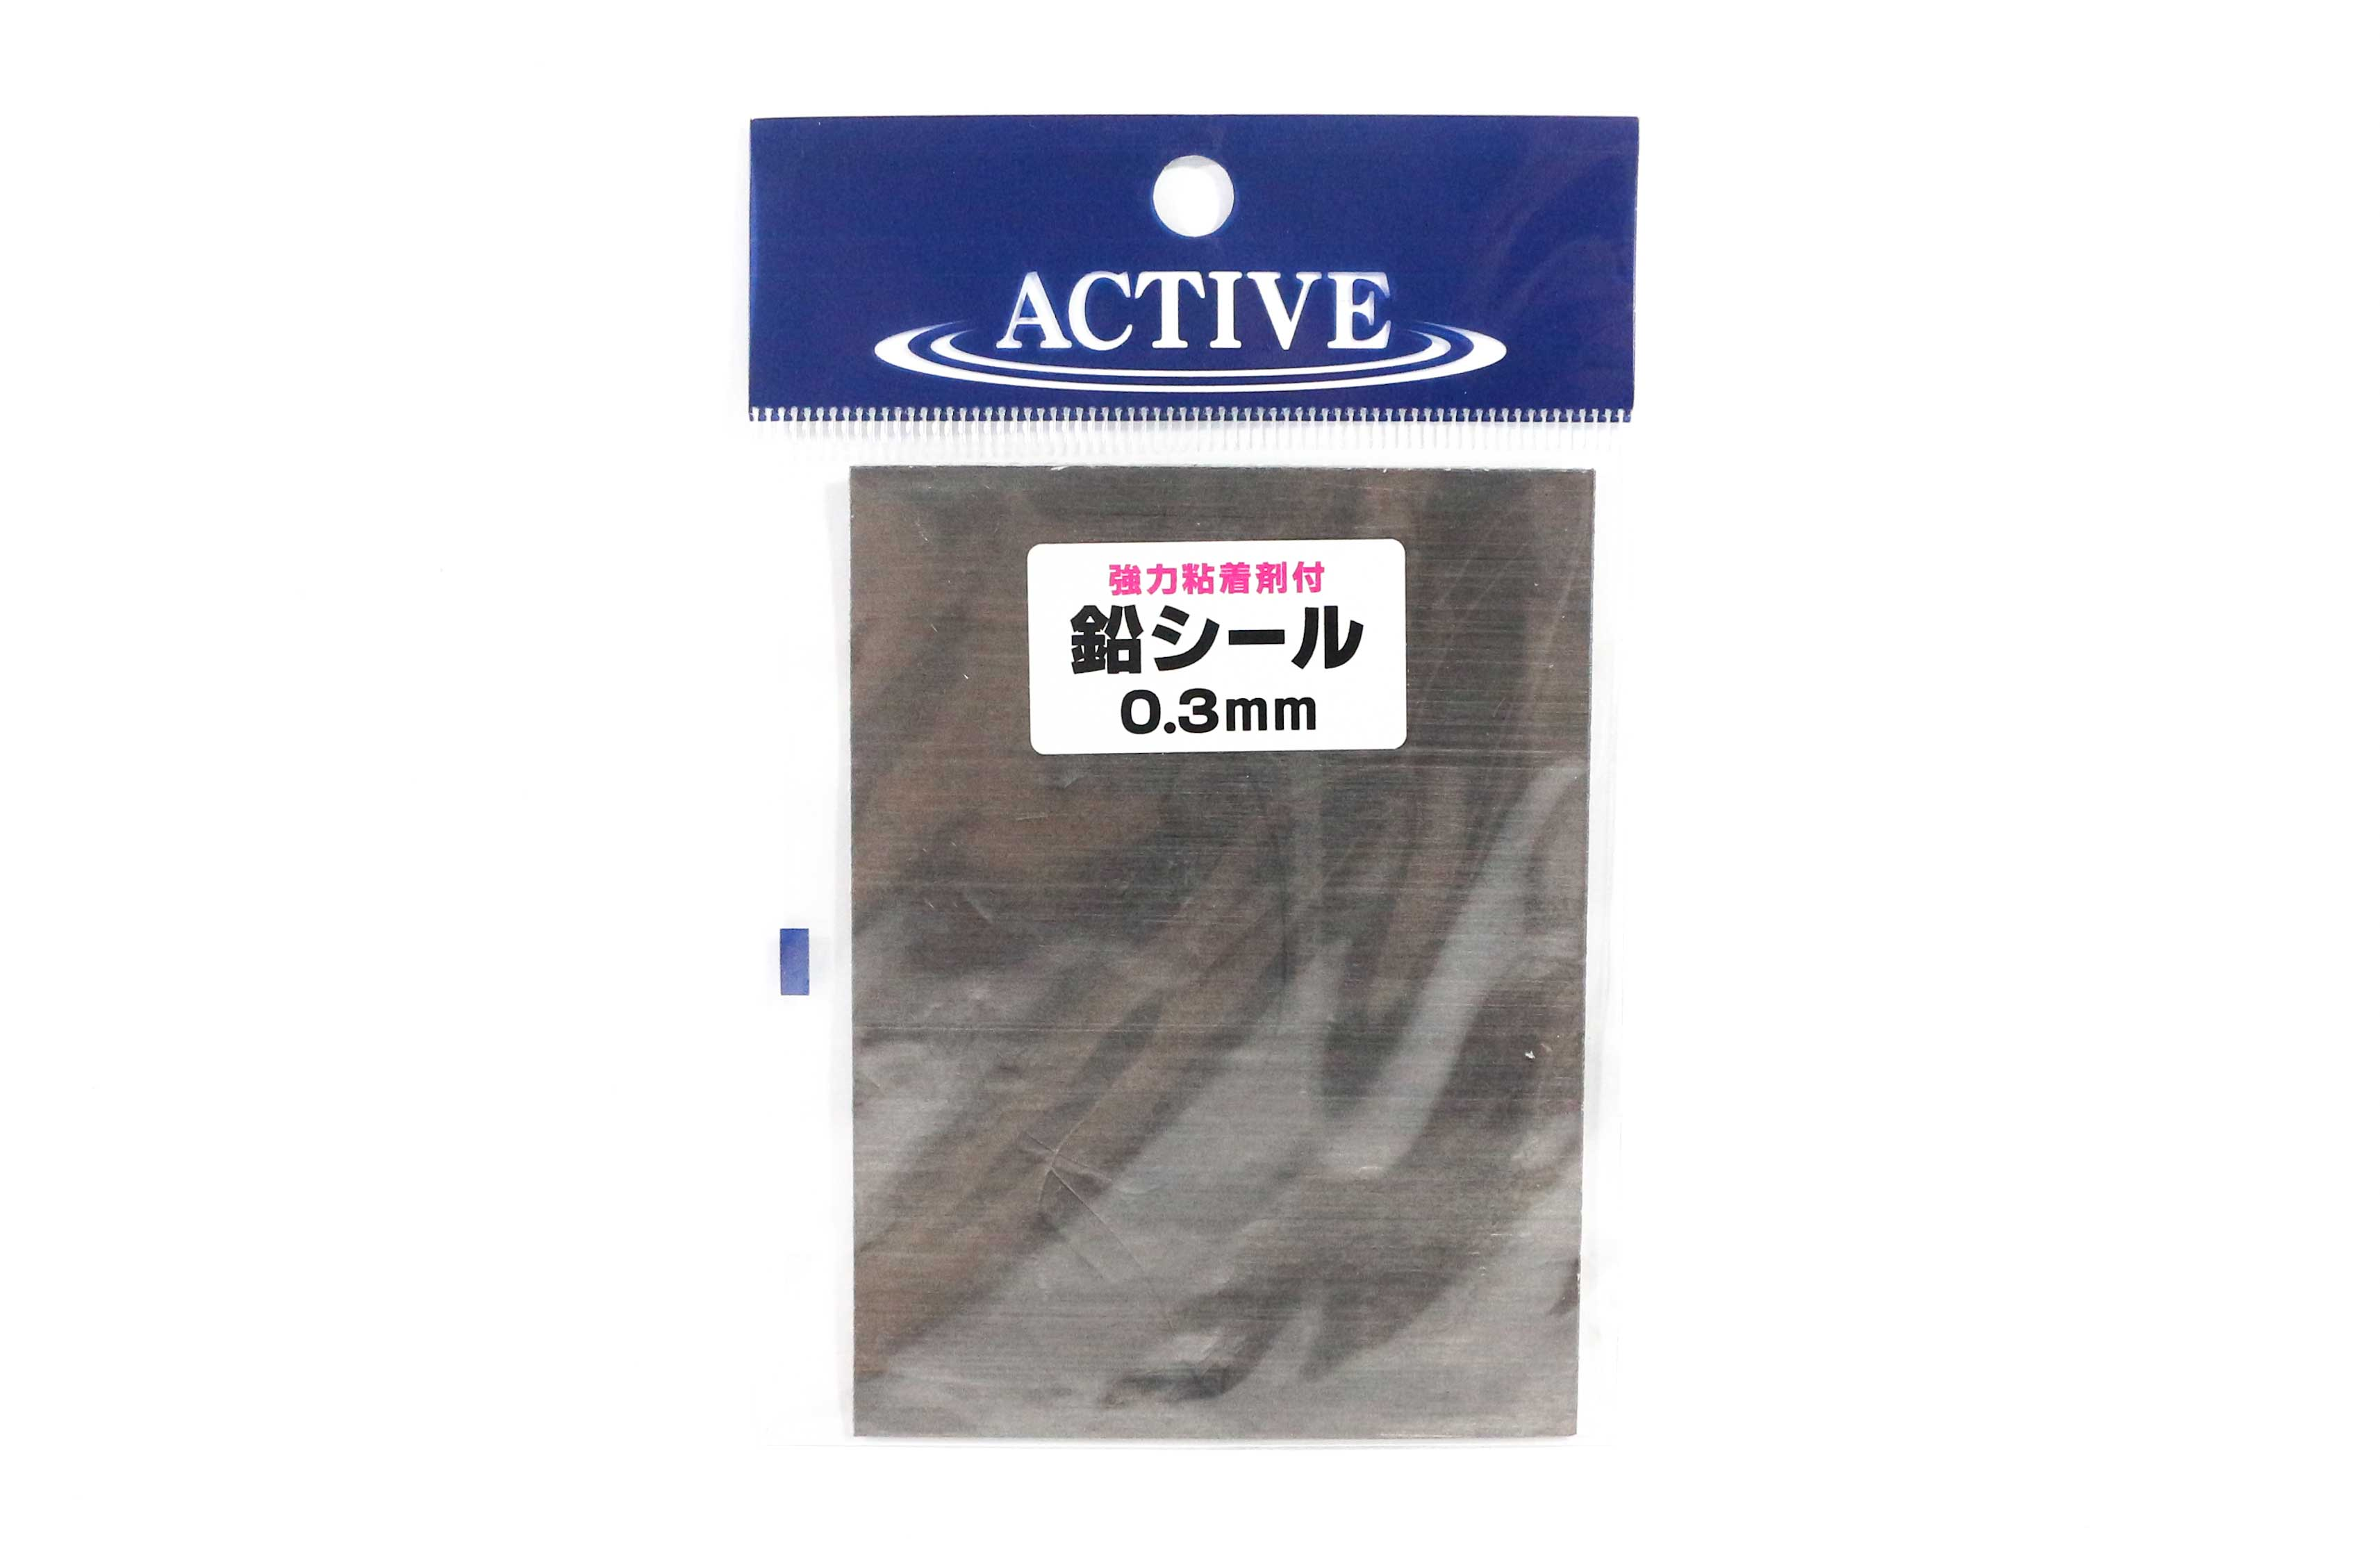 Active Lead Seal 0.3mm x 10 cm x 7.5 cm (2019)